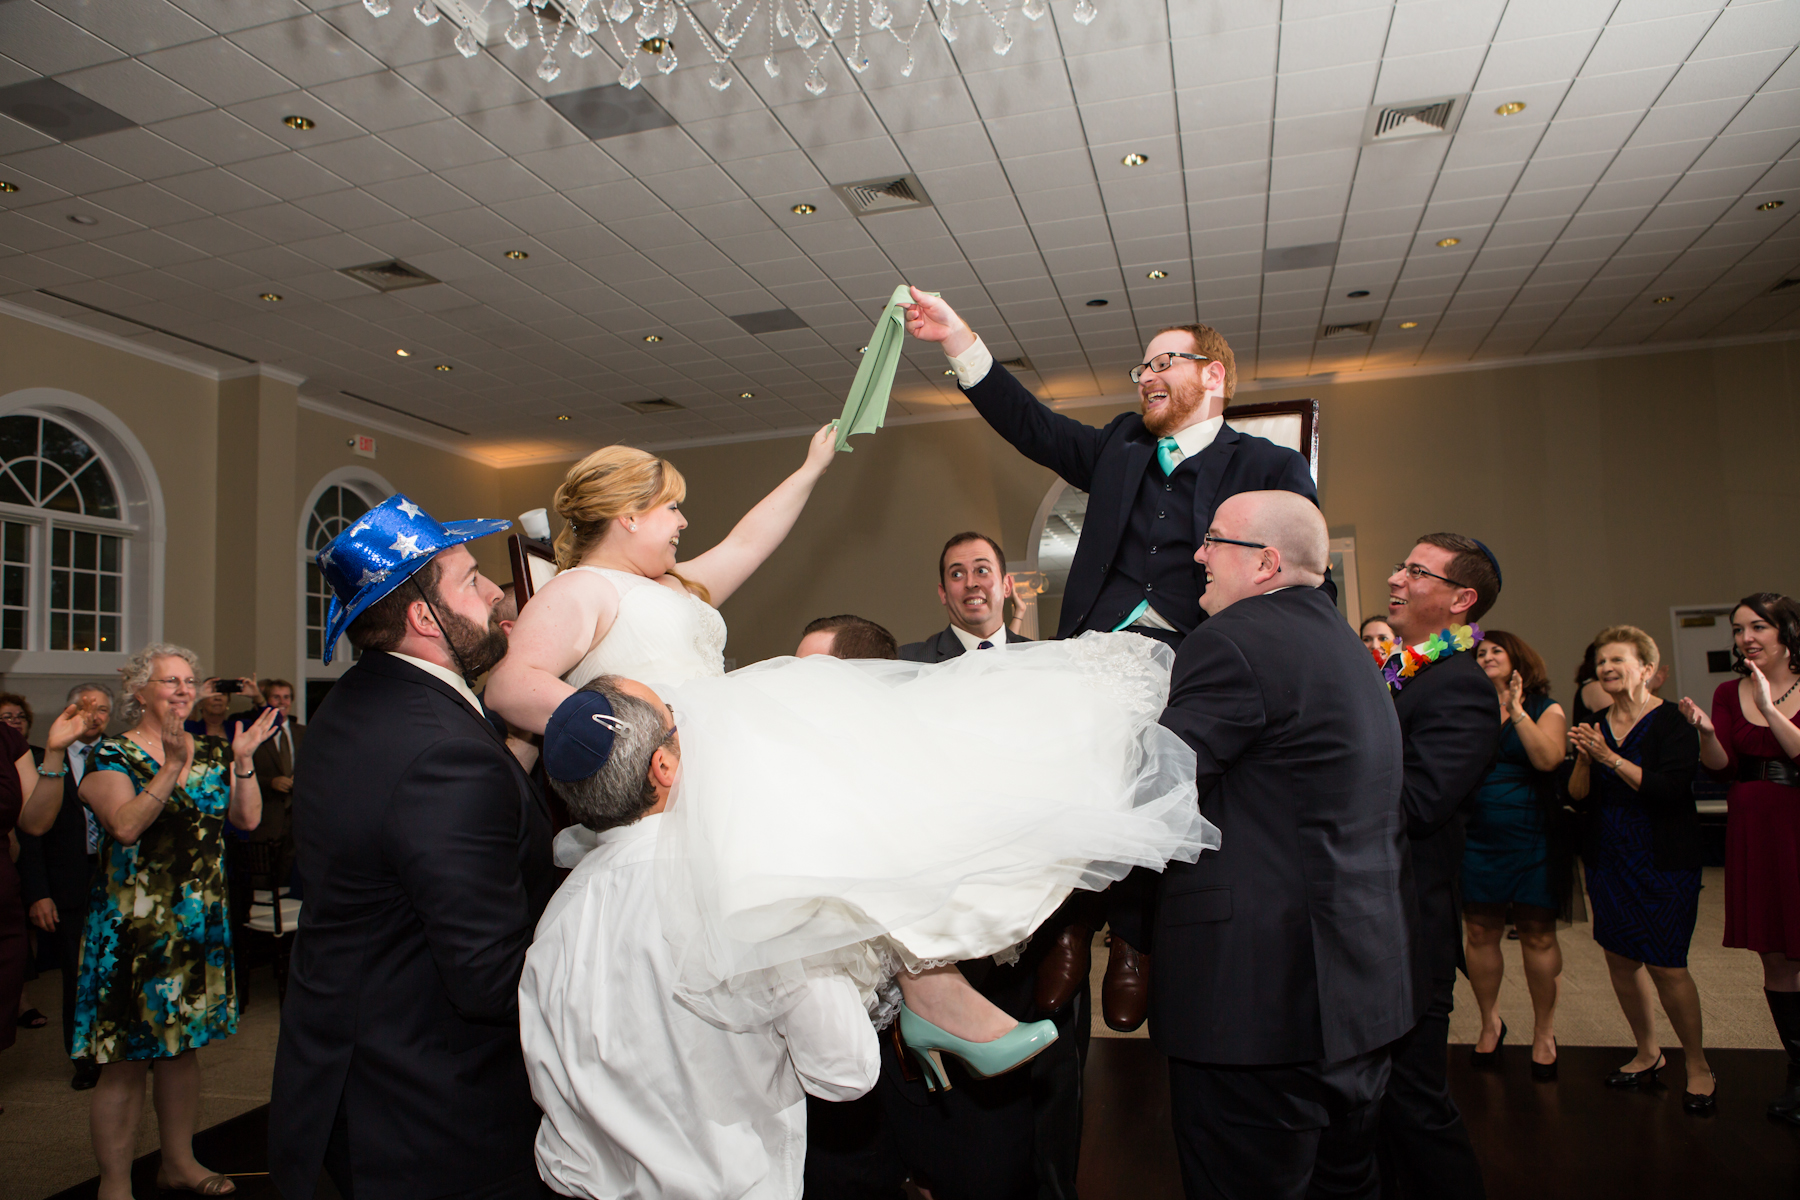 Chair Lift During The Hora | The Big Fat Jewish Wedding & How To Not Fall Out Of Your Chair During The Hora | The Big Fat ...